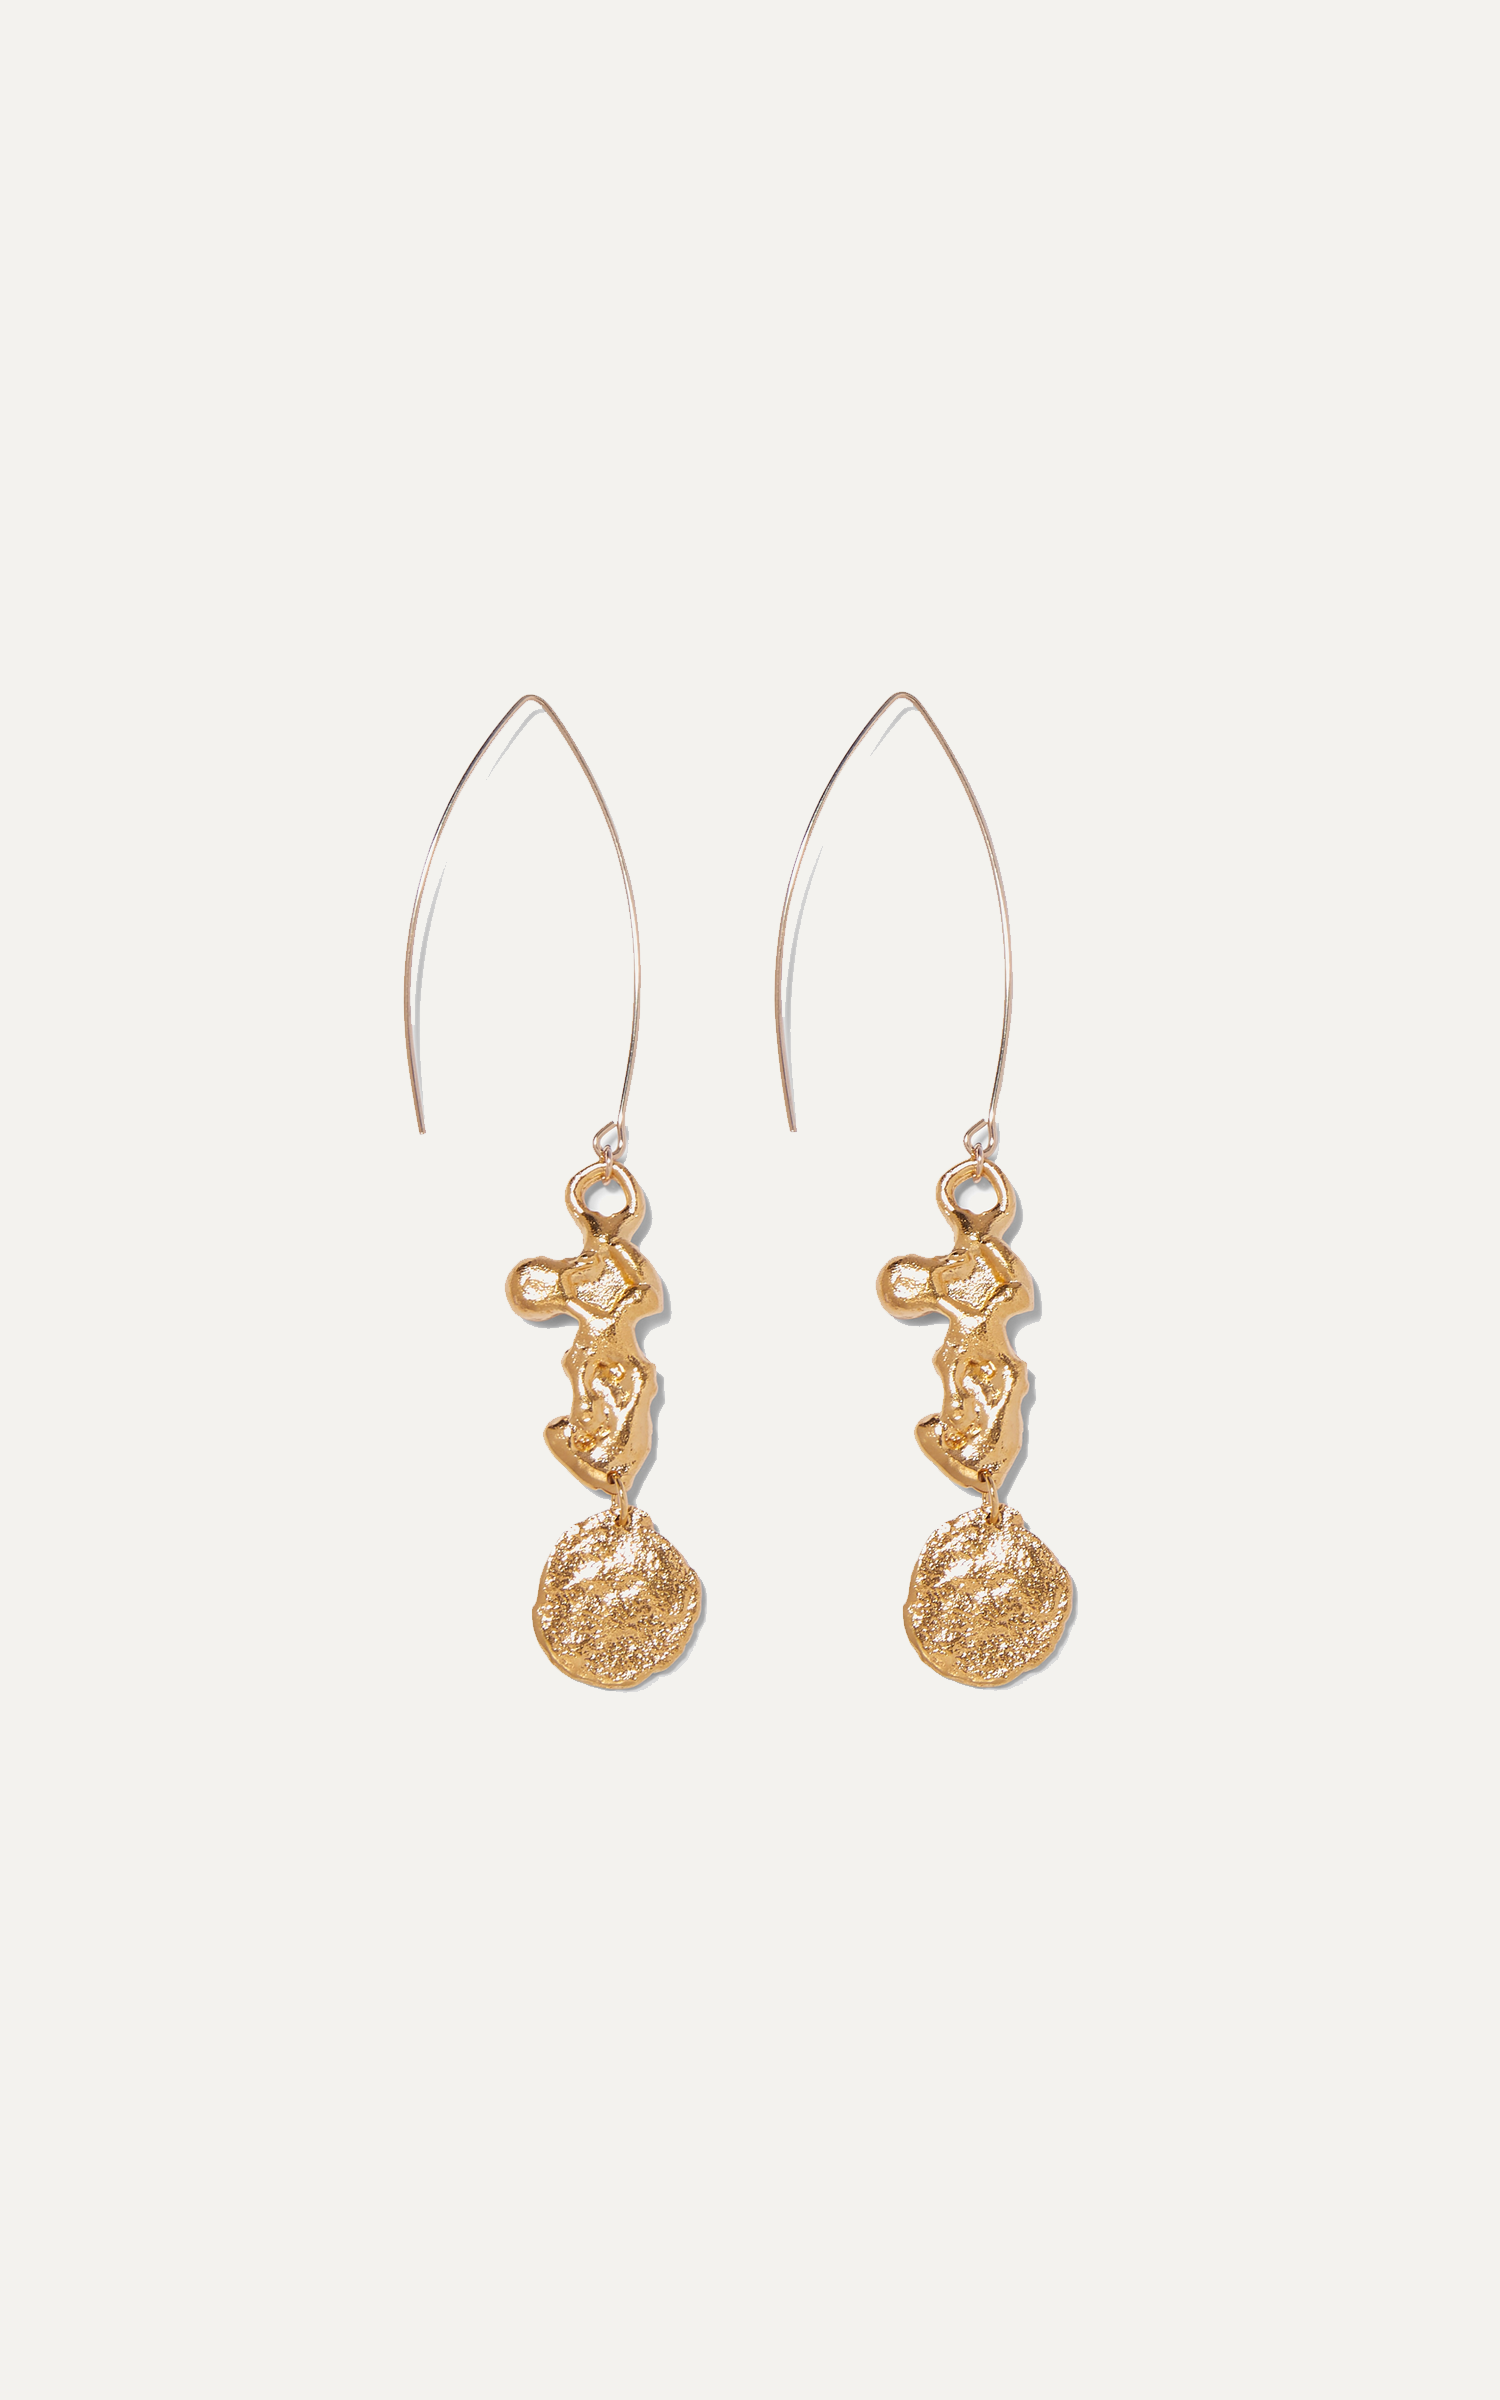 The Painter's Imagination gold-plated earrings